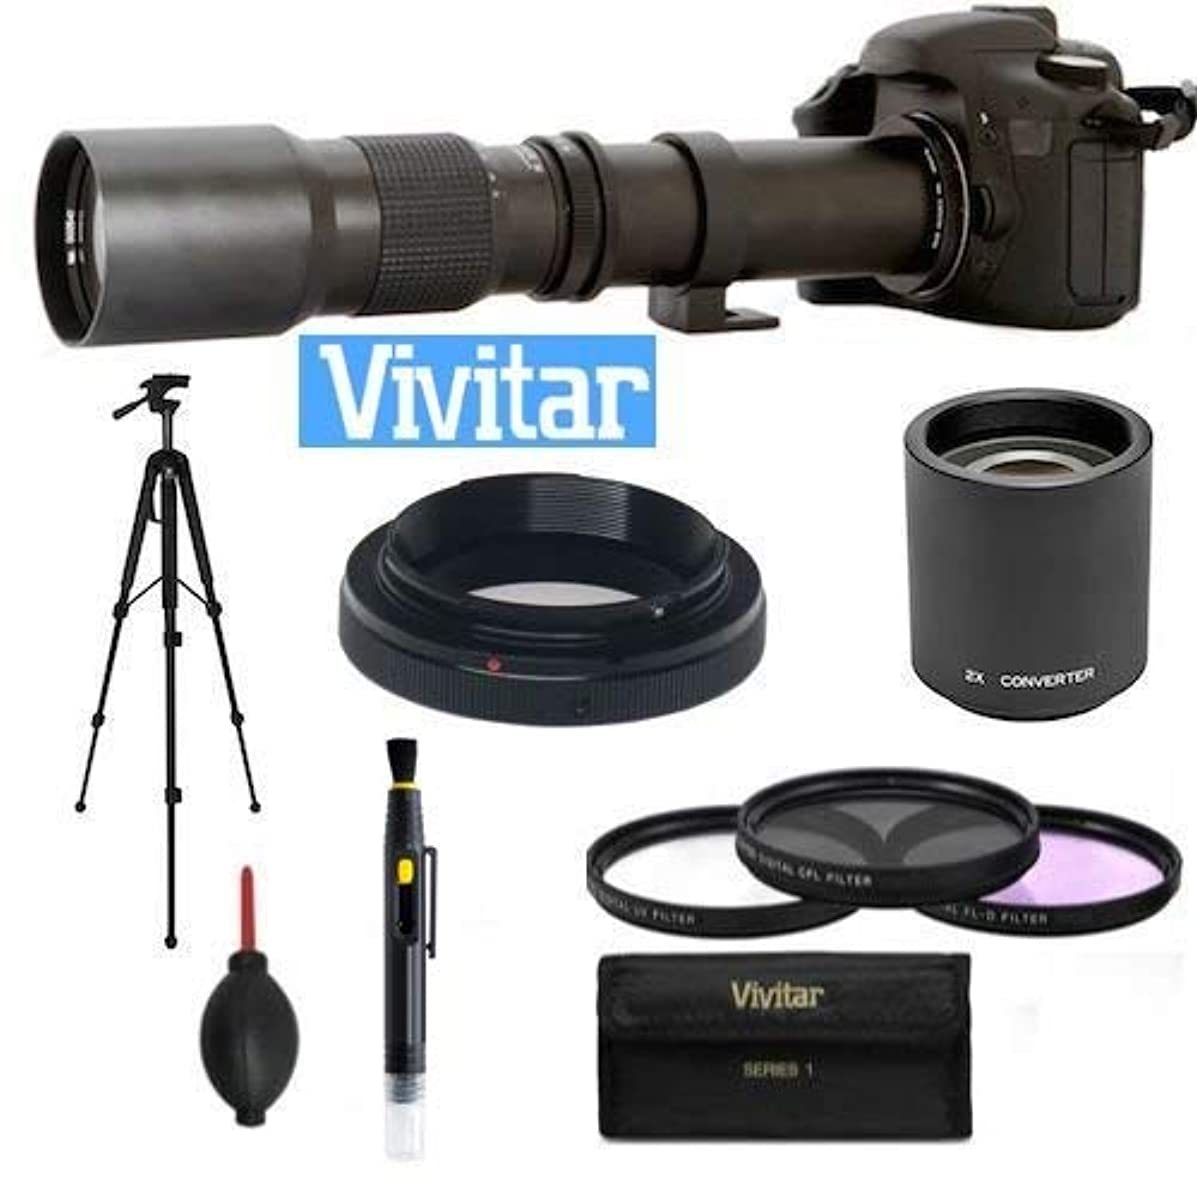 500MM-1000MM TELEPHOTO ZOOM LENS FOR CANON EOS REBEL T1 T2 T3 T4 T5 T6 T3I T4I T5I T6I